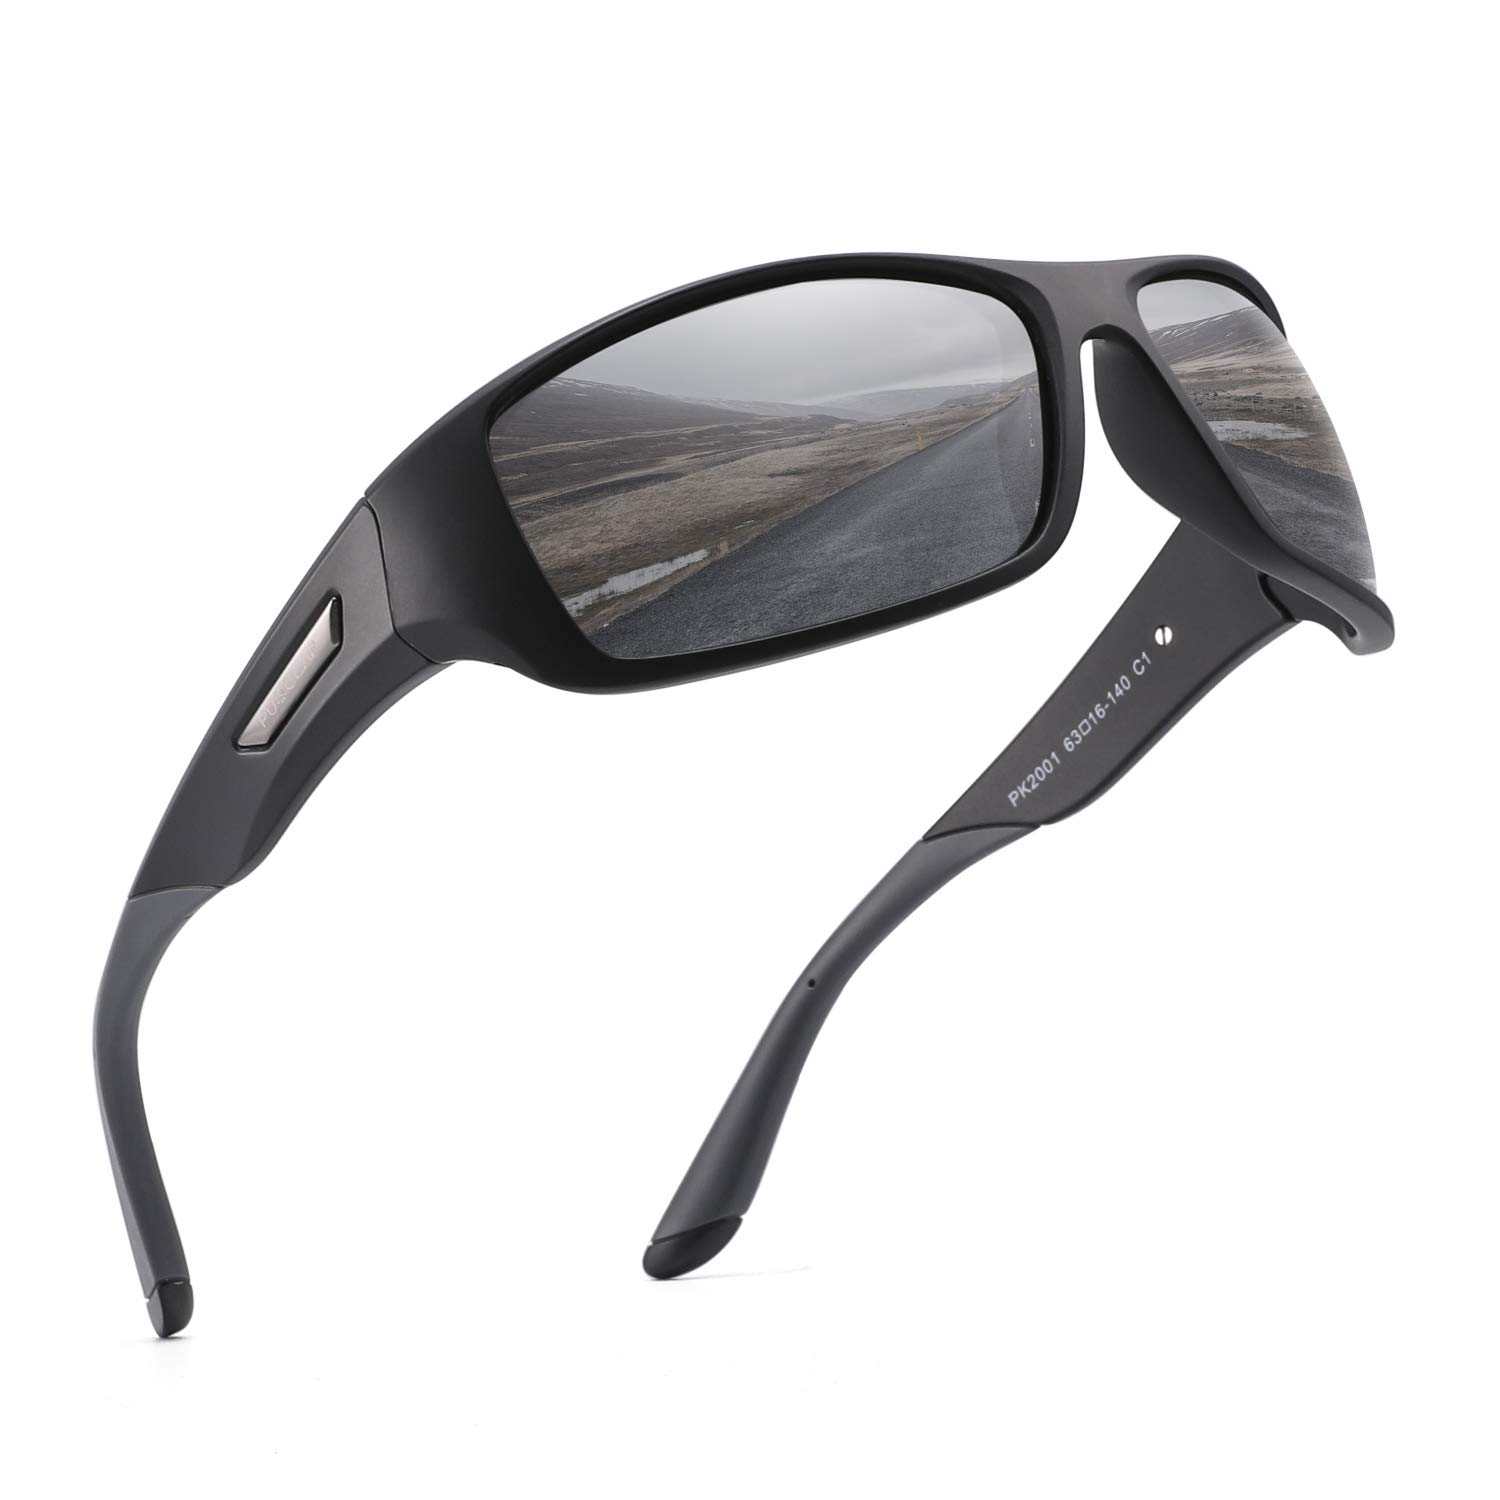 PUKCLAR Polarized Sports Sunglasses for Men Women Driving Sunglasses Cycling Running Fishing Golf Goggles Unbreakable Frame